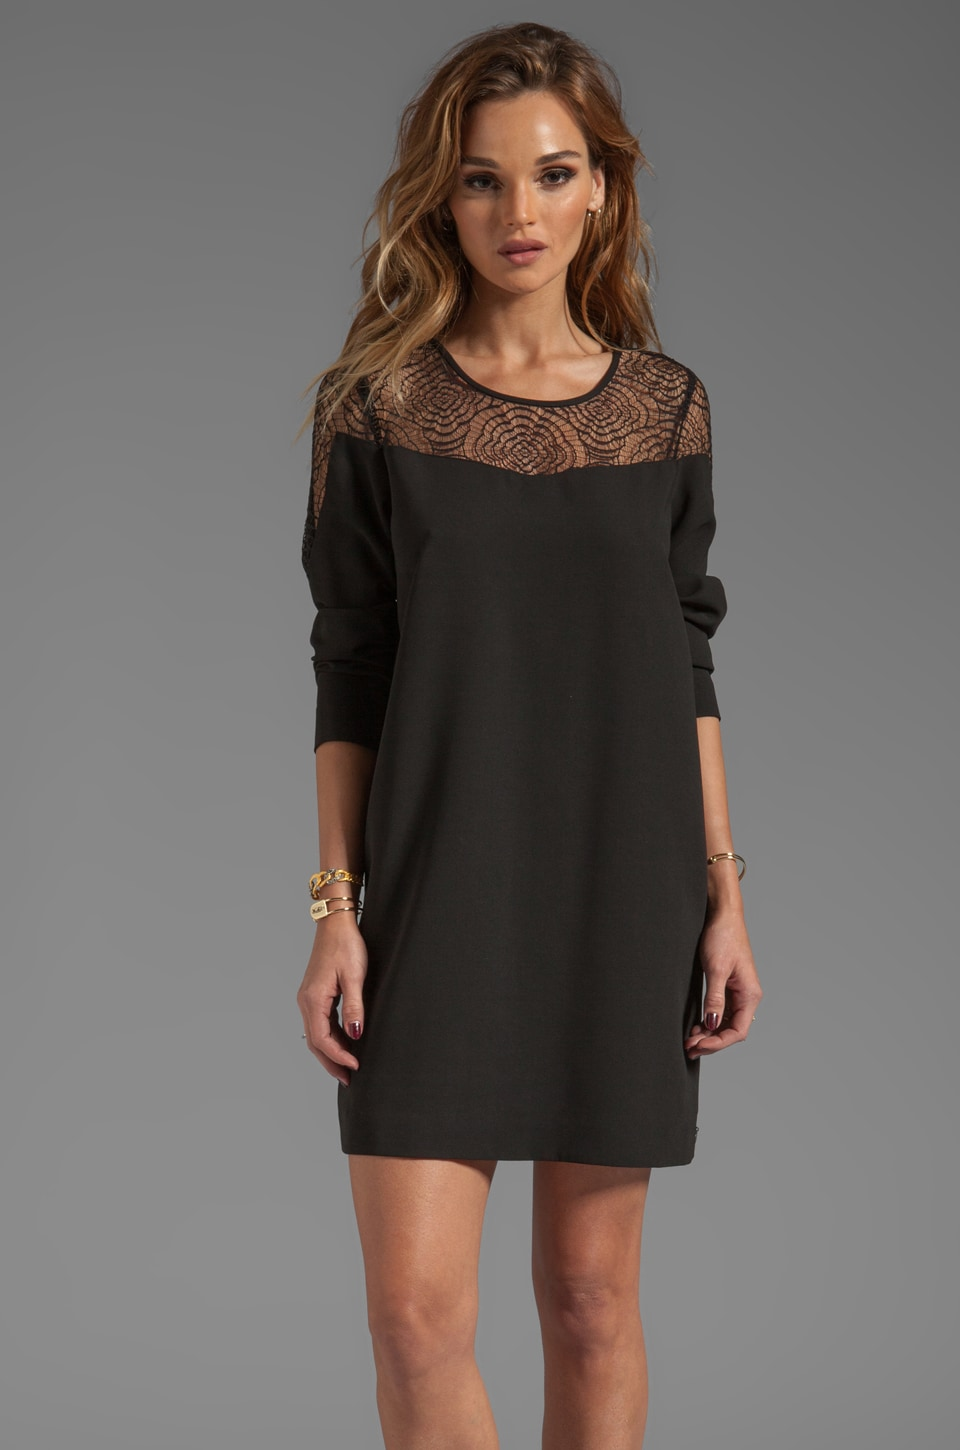 Maison Scotch Long Sleeve Lace Dress in Black